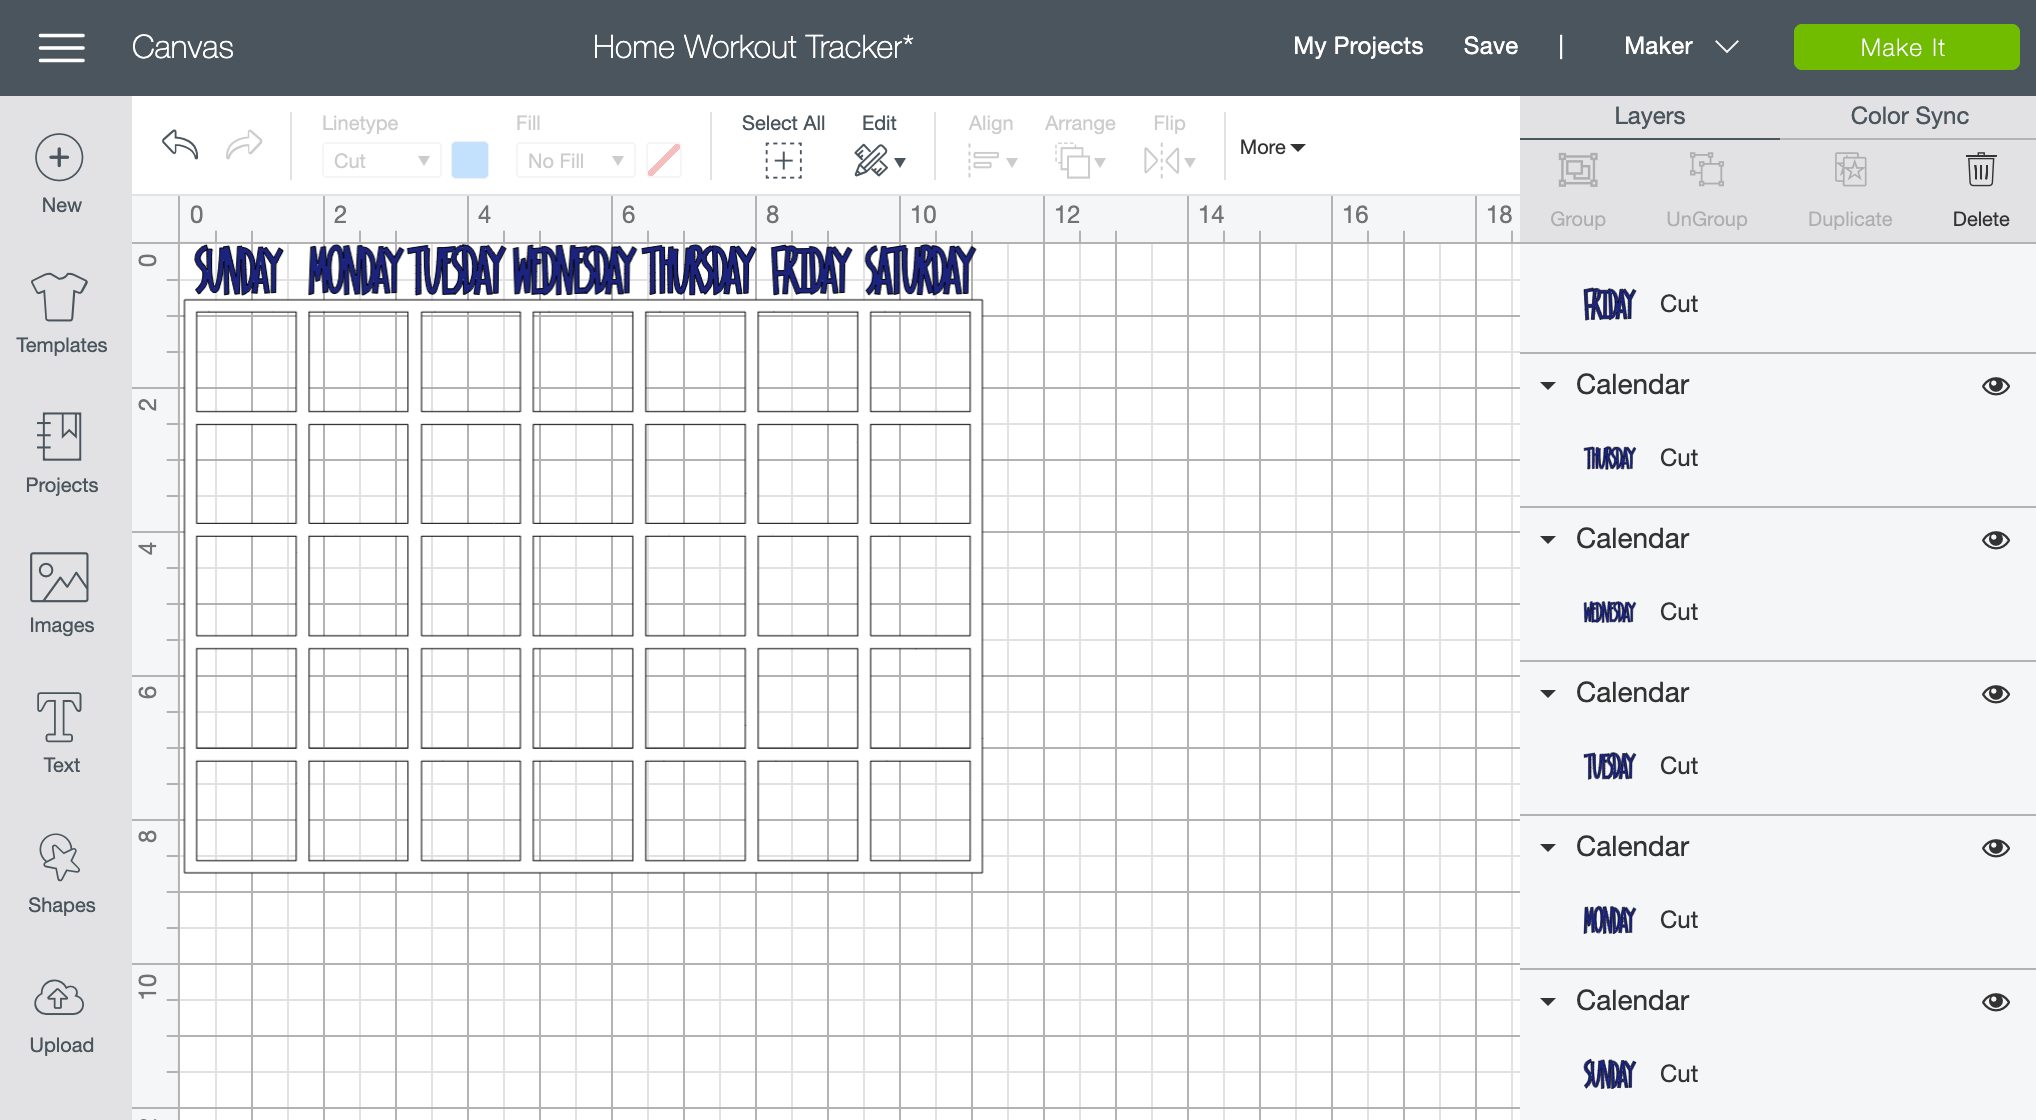 At Home Workout Tracker